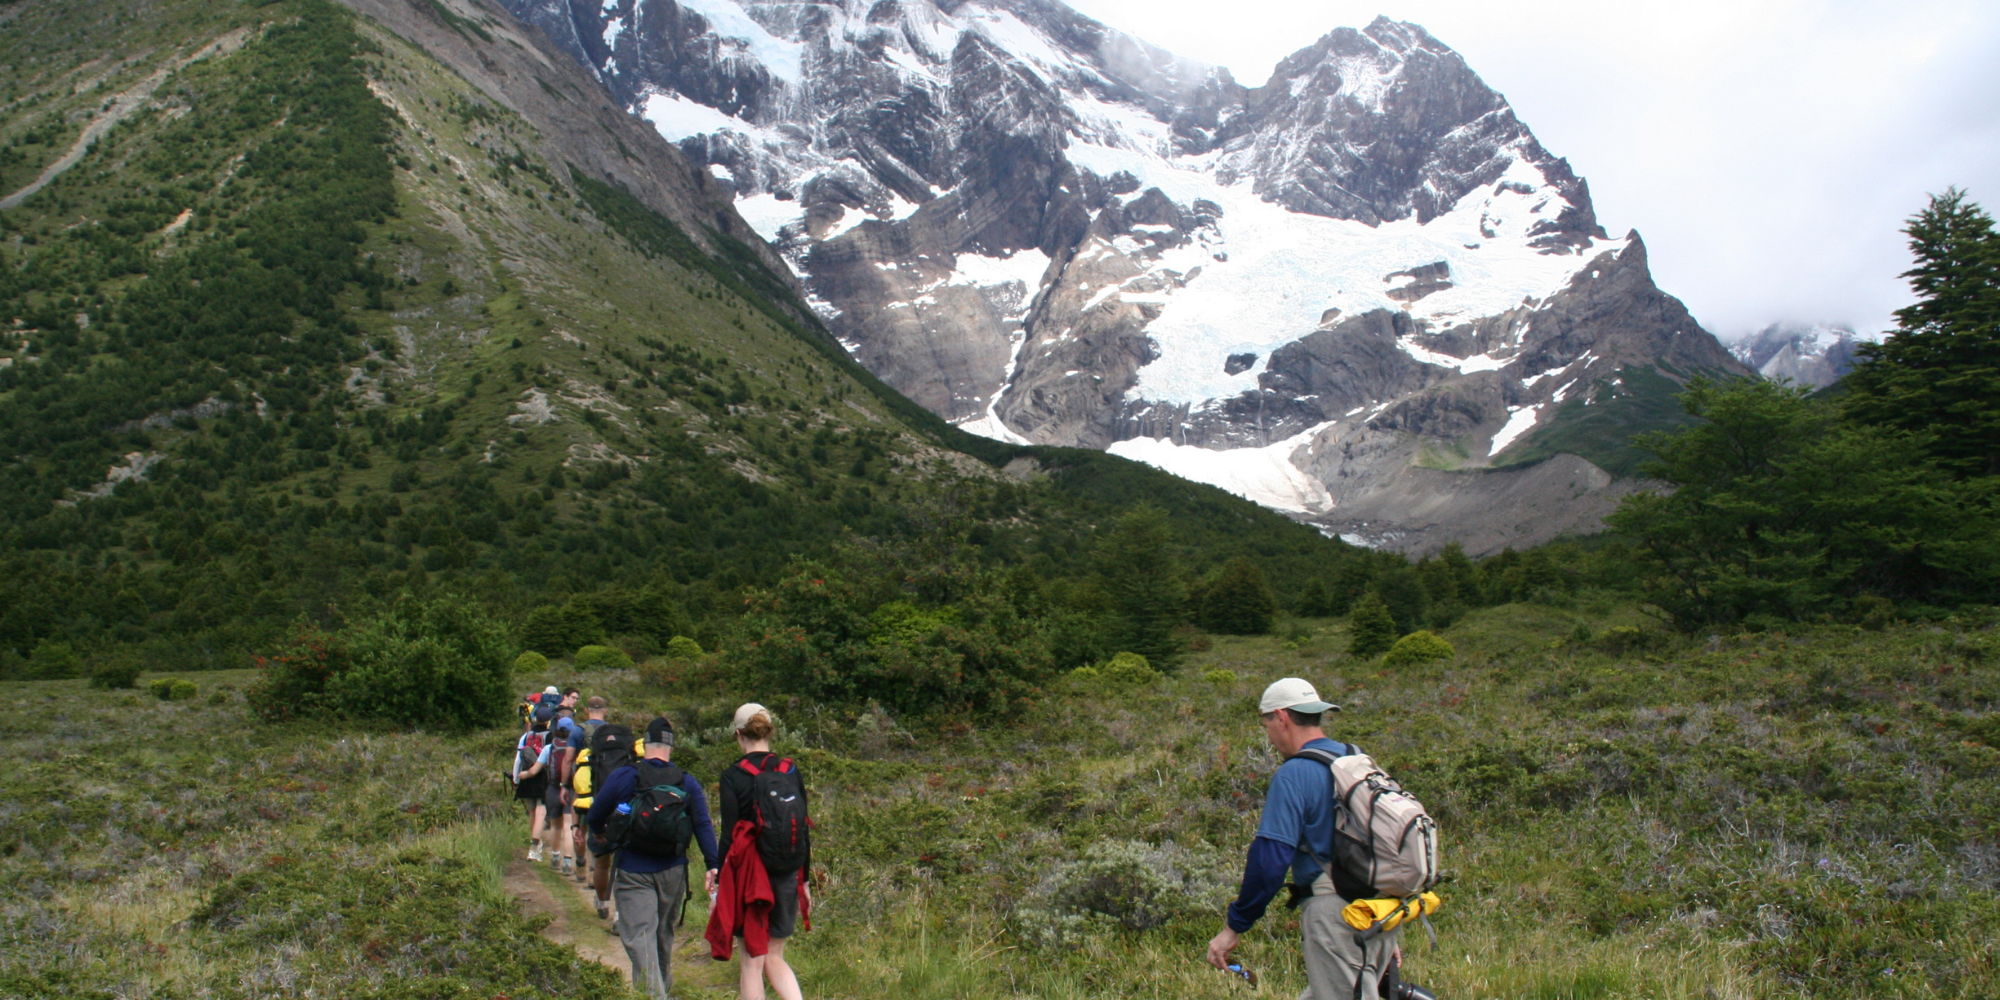 Trekking at the Tip of the World: Patagonia